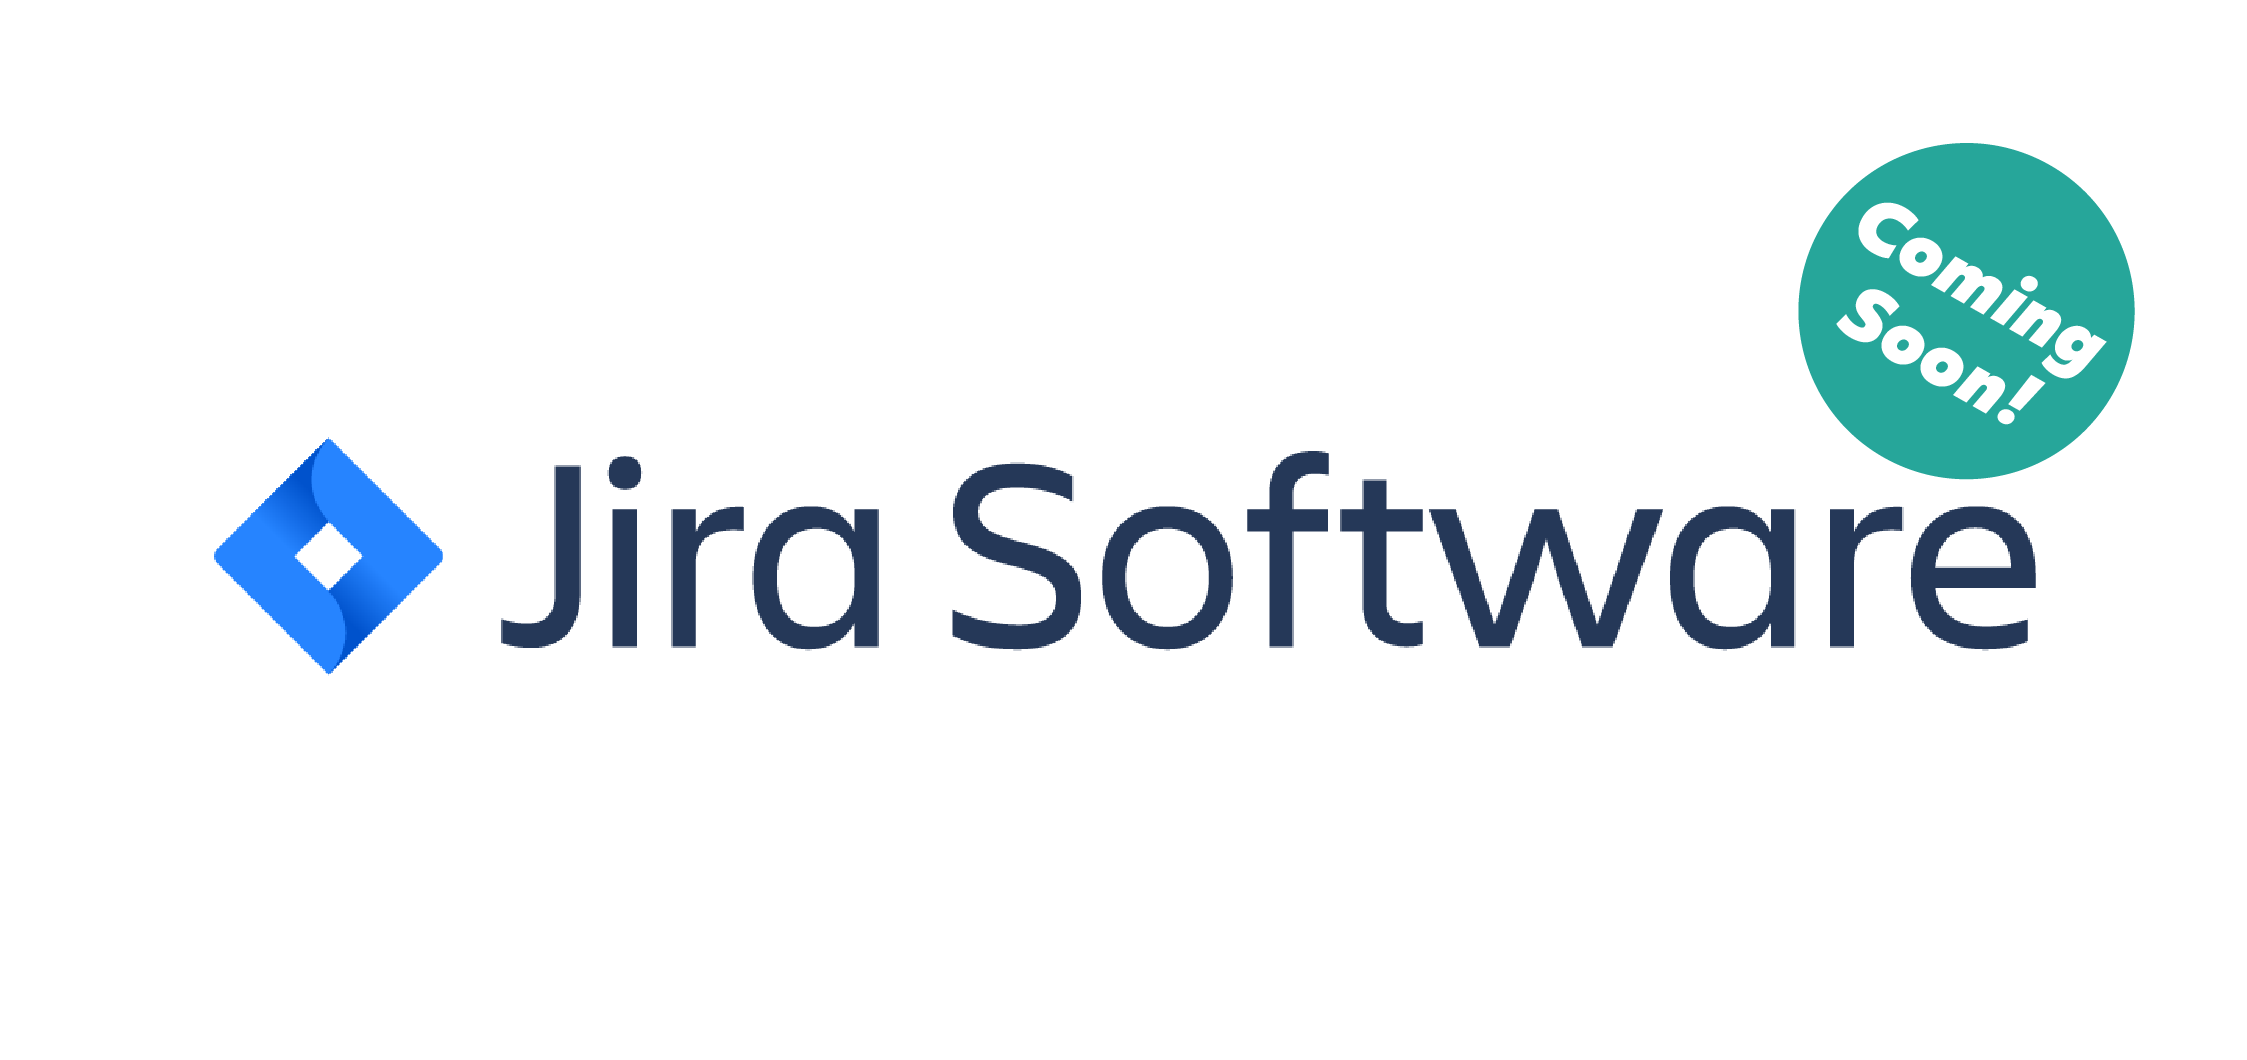 Plan, track, and manage your agile and software development projects in Jira. Customize your workflow, collaborate, and release great software.